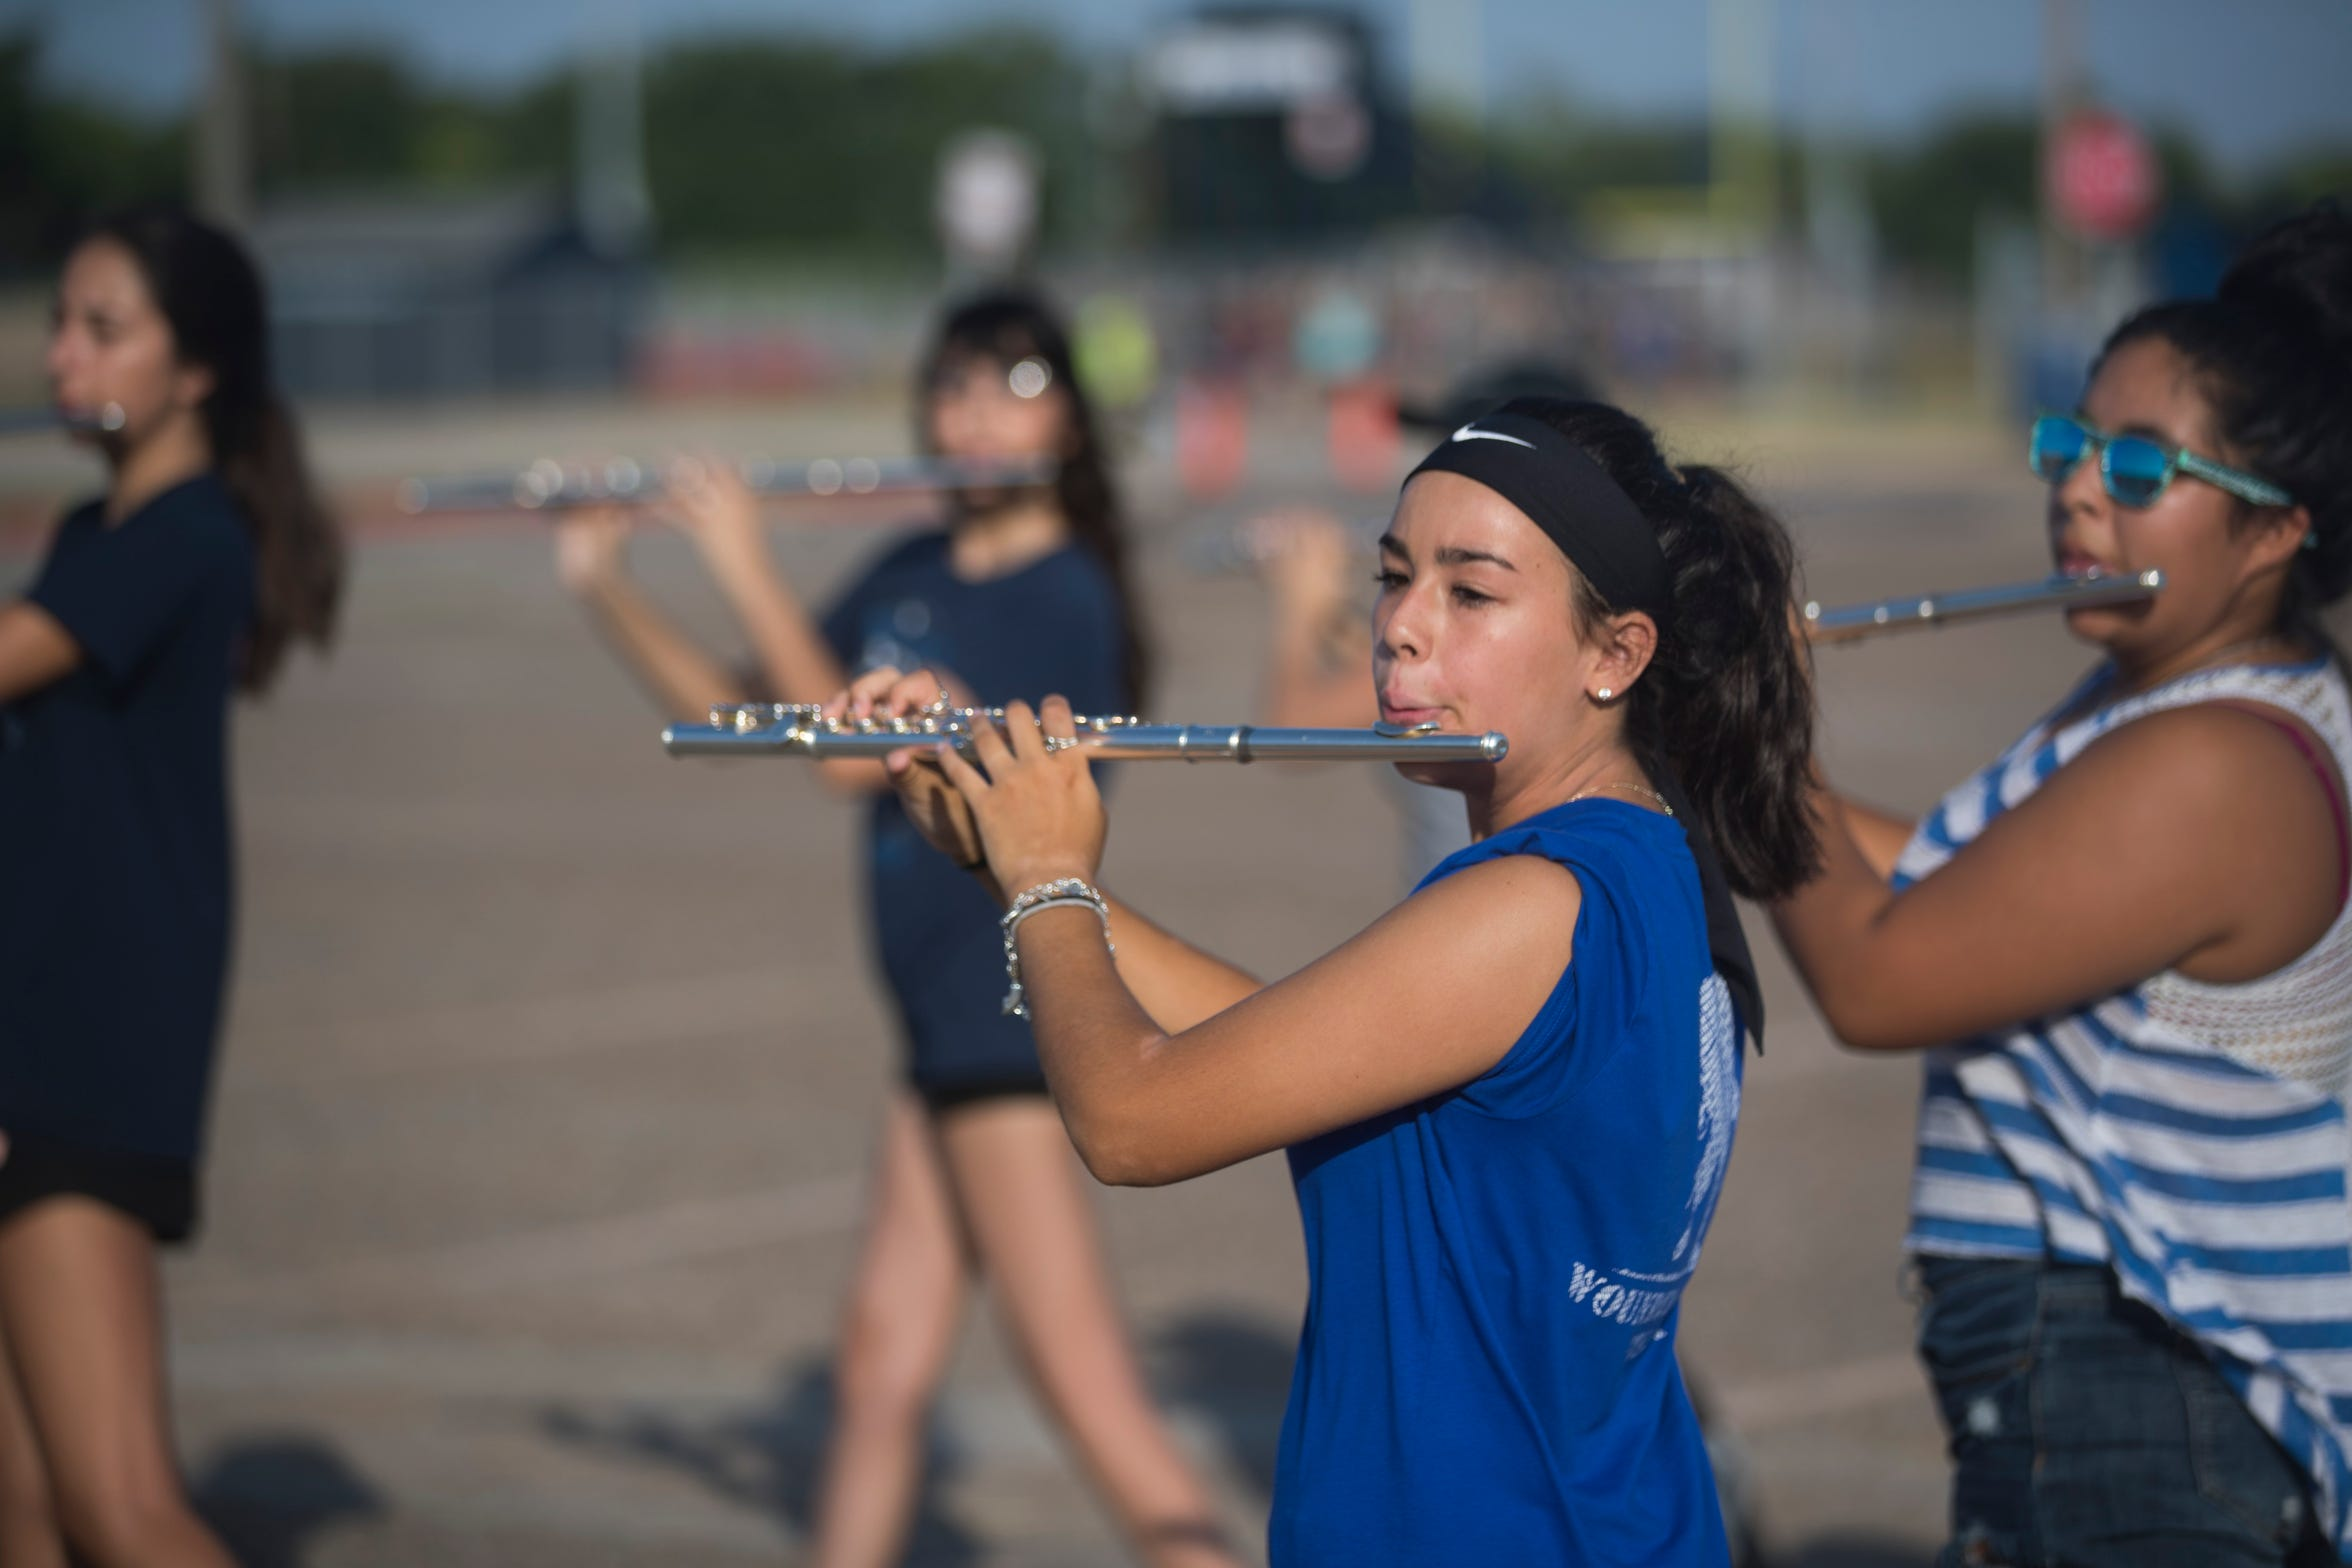 Carroll's Allyson Newton plays the flute during band practices in the parking lot of Carroll High School onMonday, July 30, 2018.